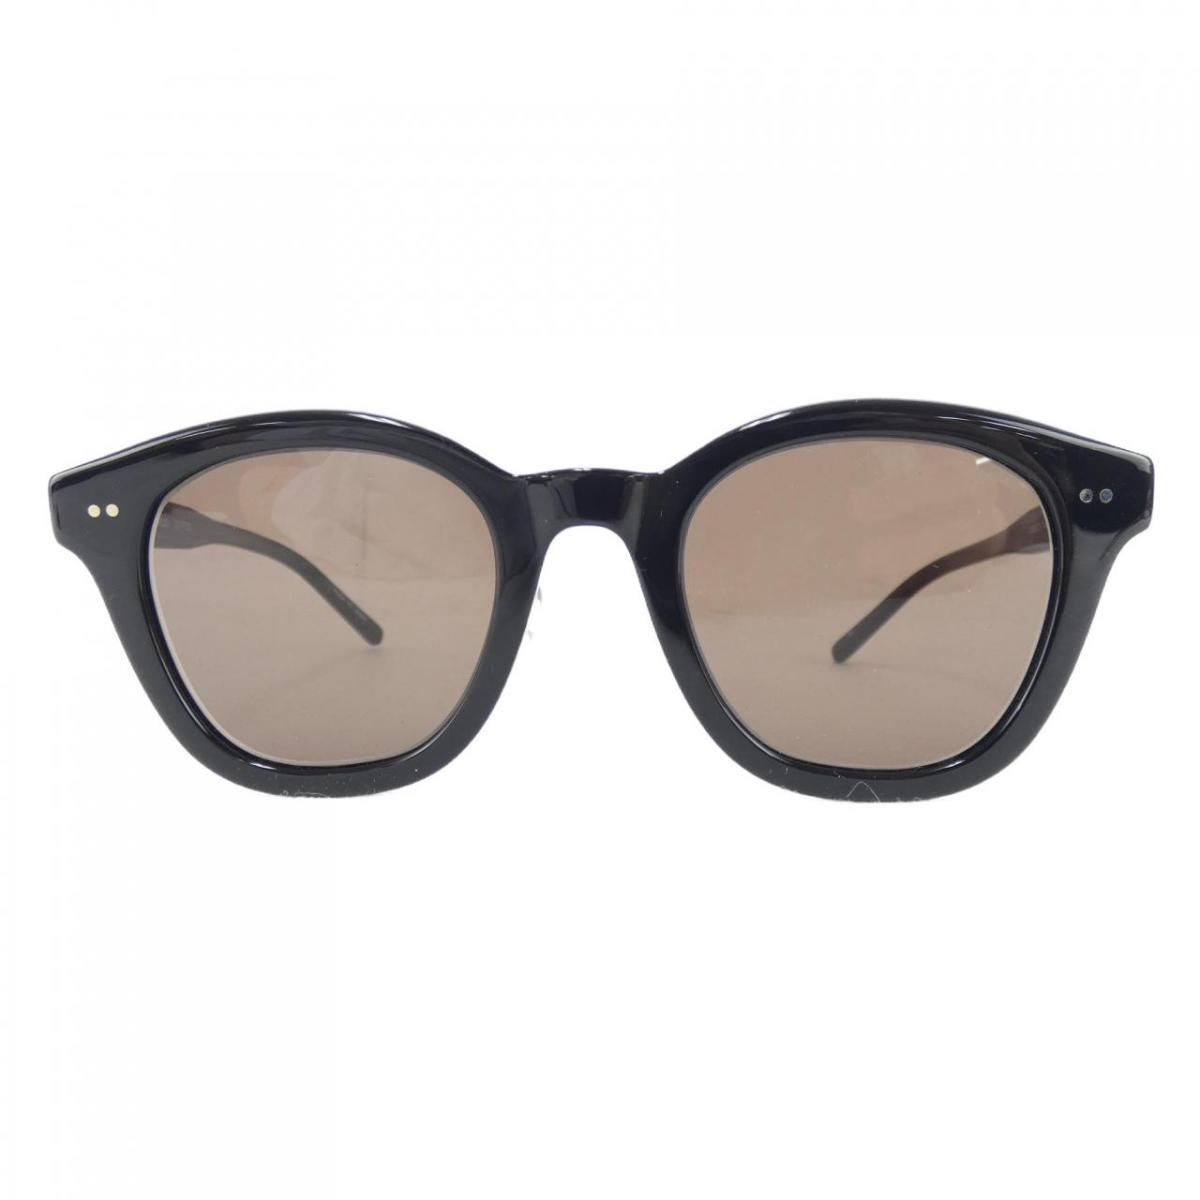 オリバーピープルズ OLIVER PEOPLES SUNGLASSES Ebonee【中古】